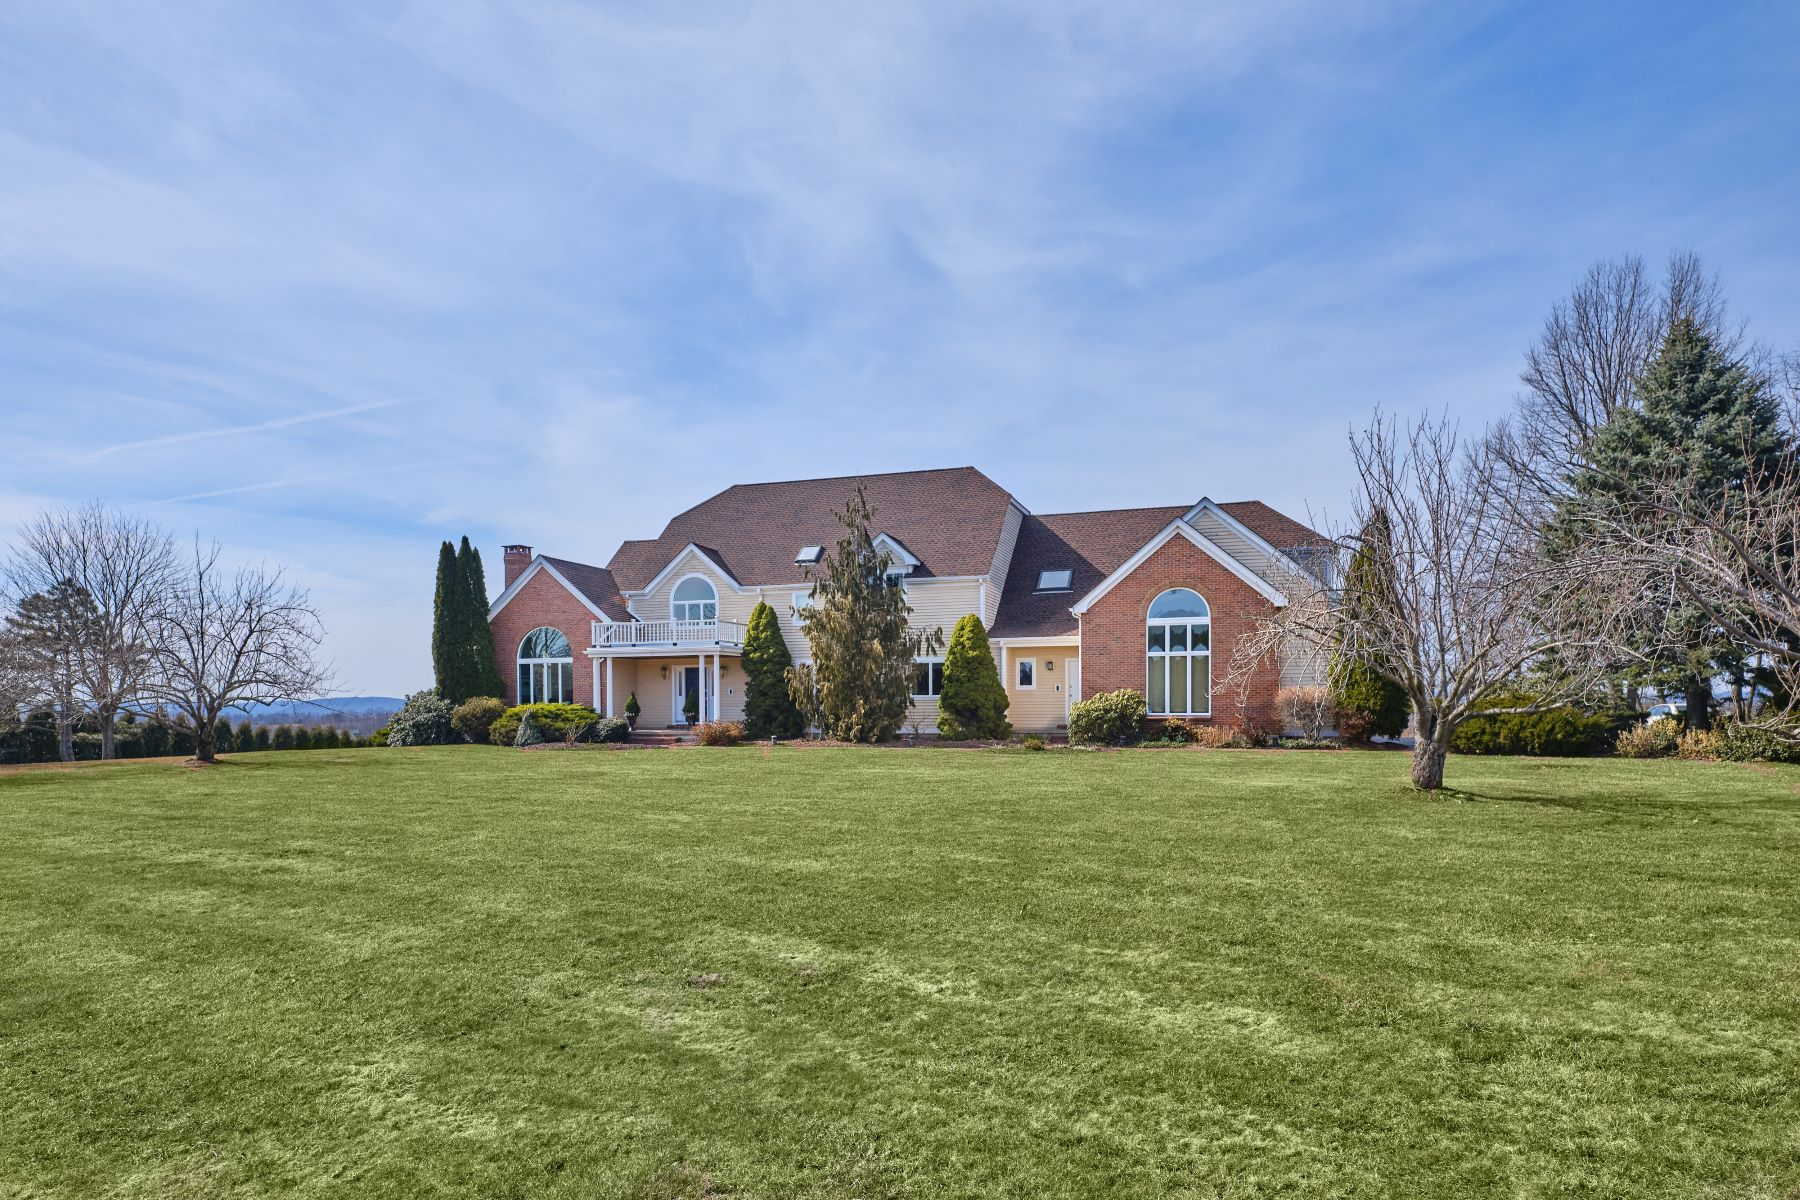 Single Family Homes for Sale at Breathtaking Views 5 Turnberry Road Wallingford, Connecticut 06492 United States